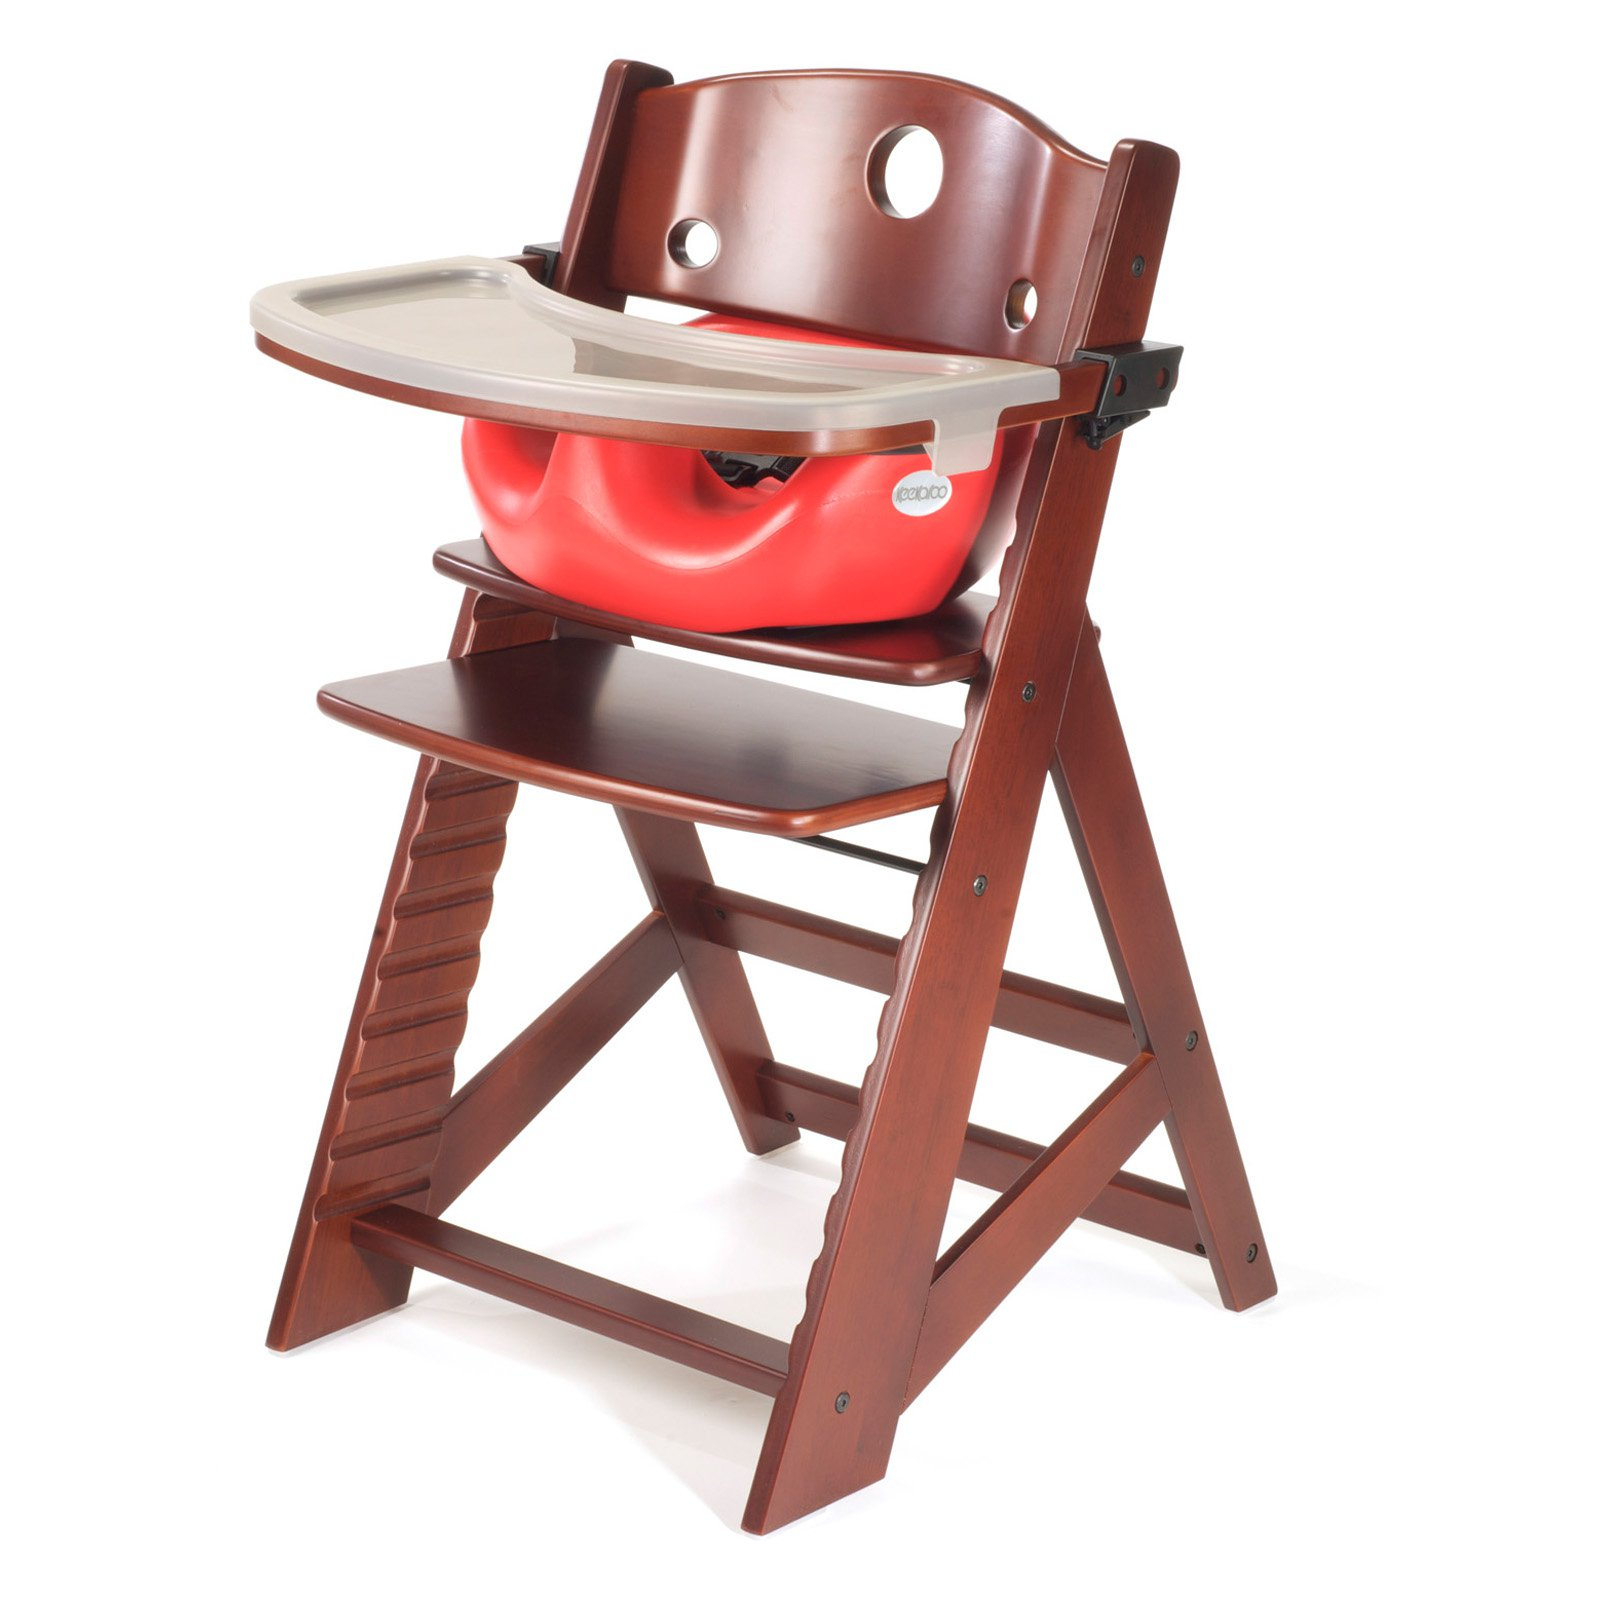 Keekaroo Height Right High Chair Mahogany with Cherry Infant Insert and Tray by Keekaroo